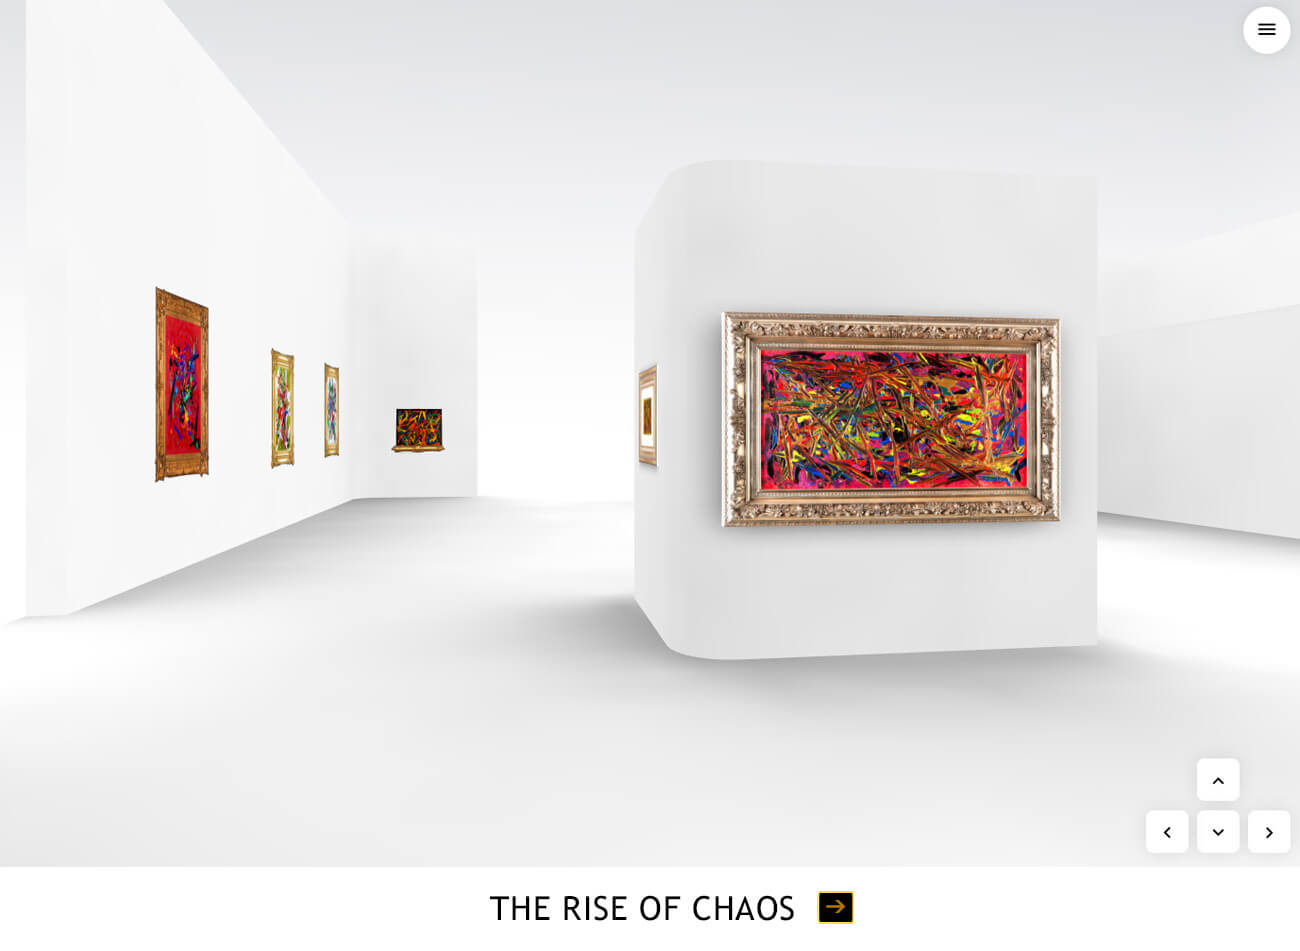 The Rise of Chaos